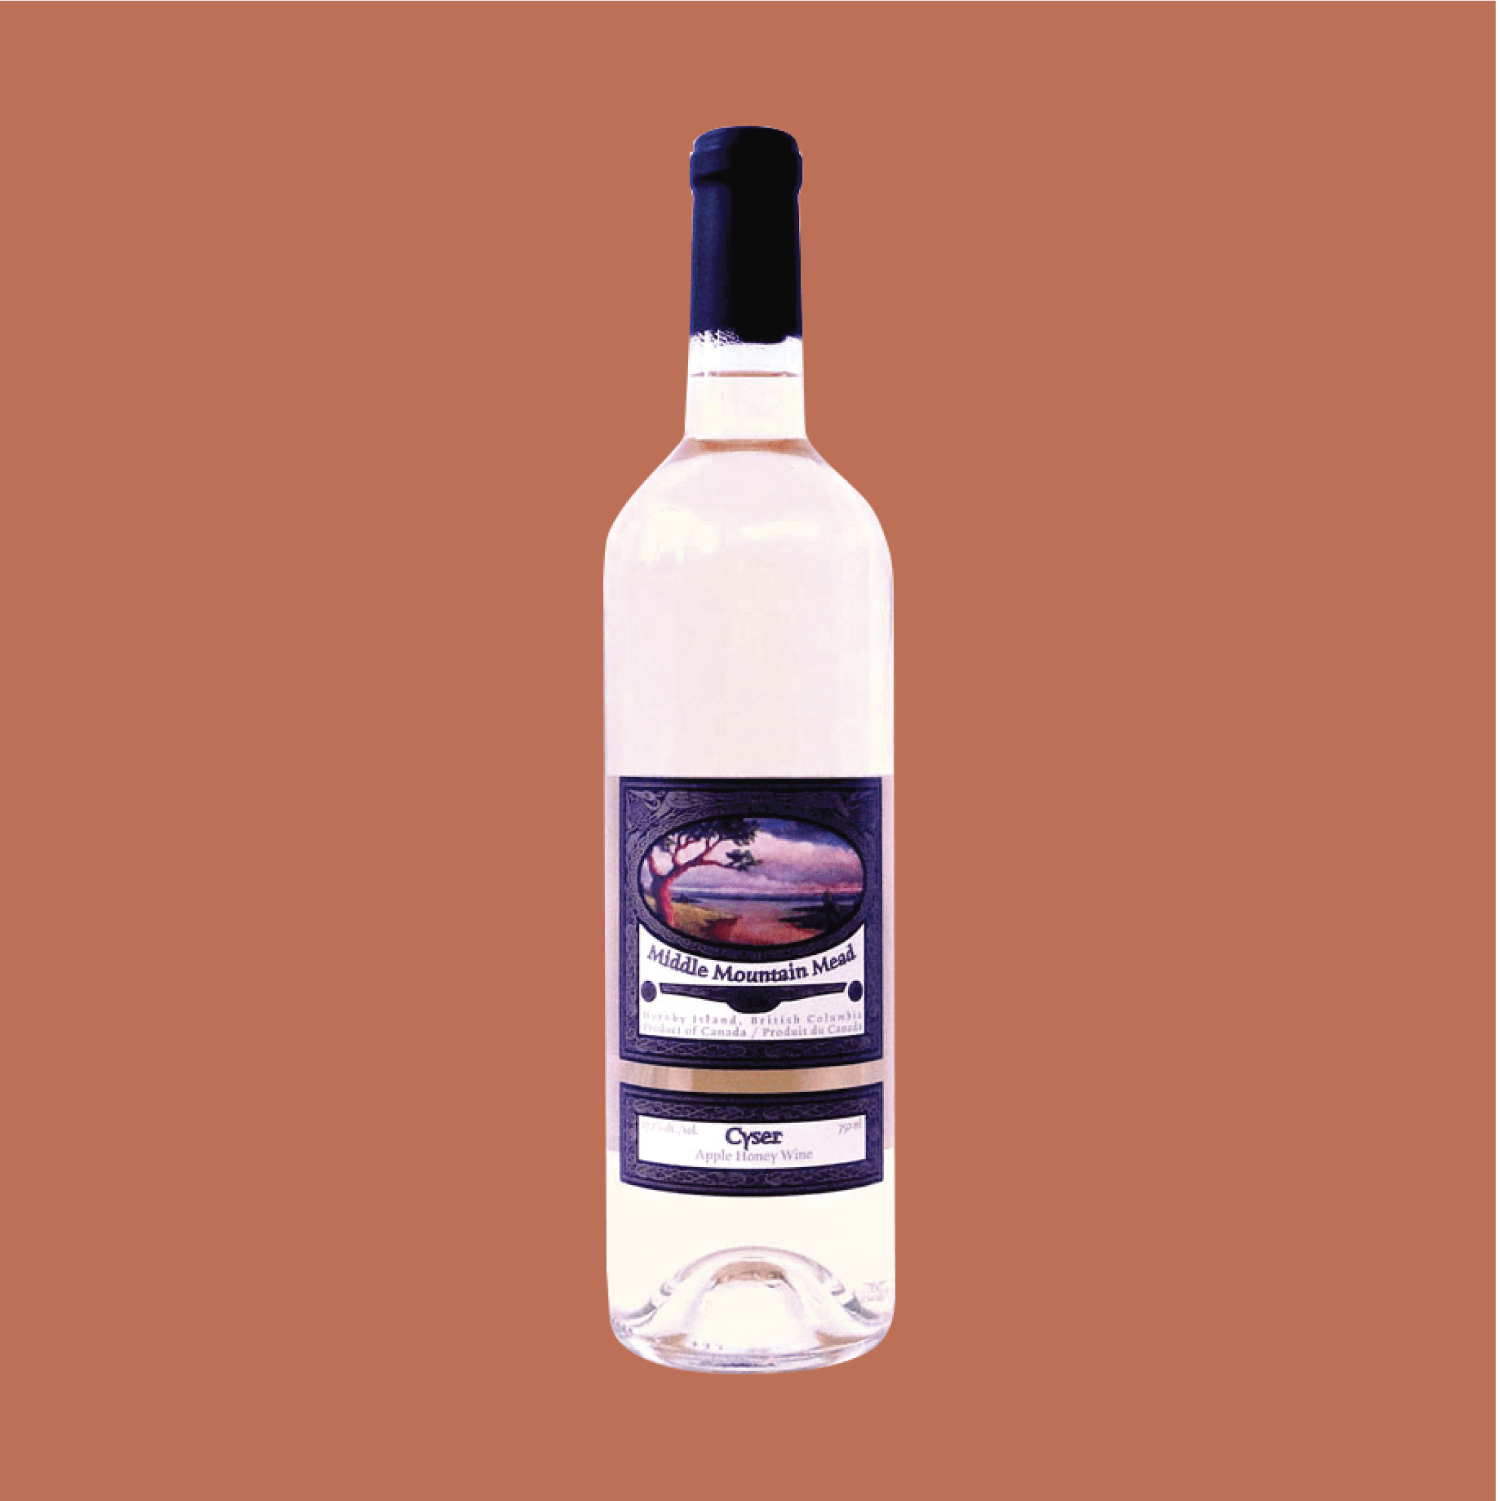 Middle Mountain Cyser - Honey-dipped apple flavours with overtones of sage and spice. A great accompaniment to your favourite summertime picnic foods.$24.99, 750 ml